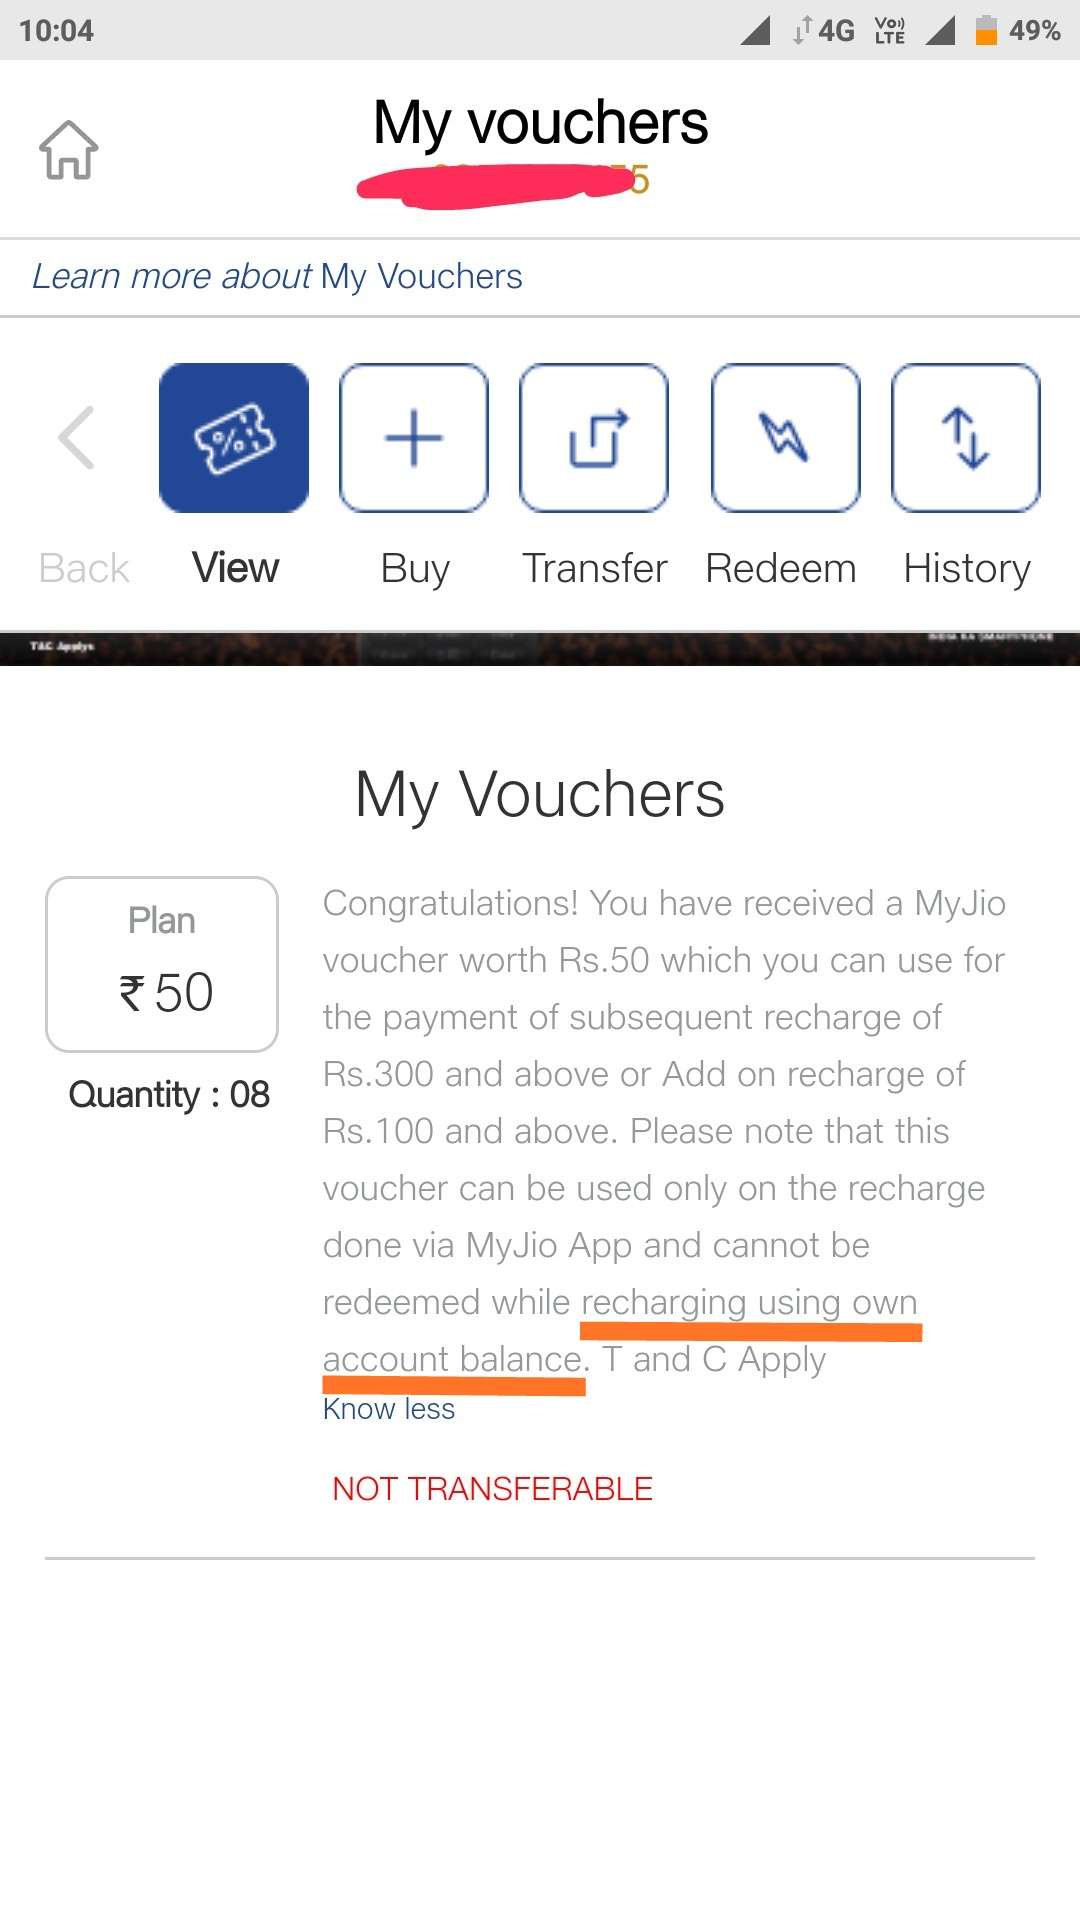 Jio- New terms and condition for voucher application  | DesiDime